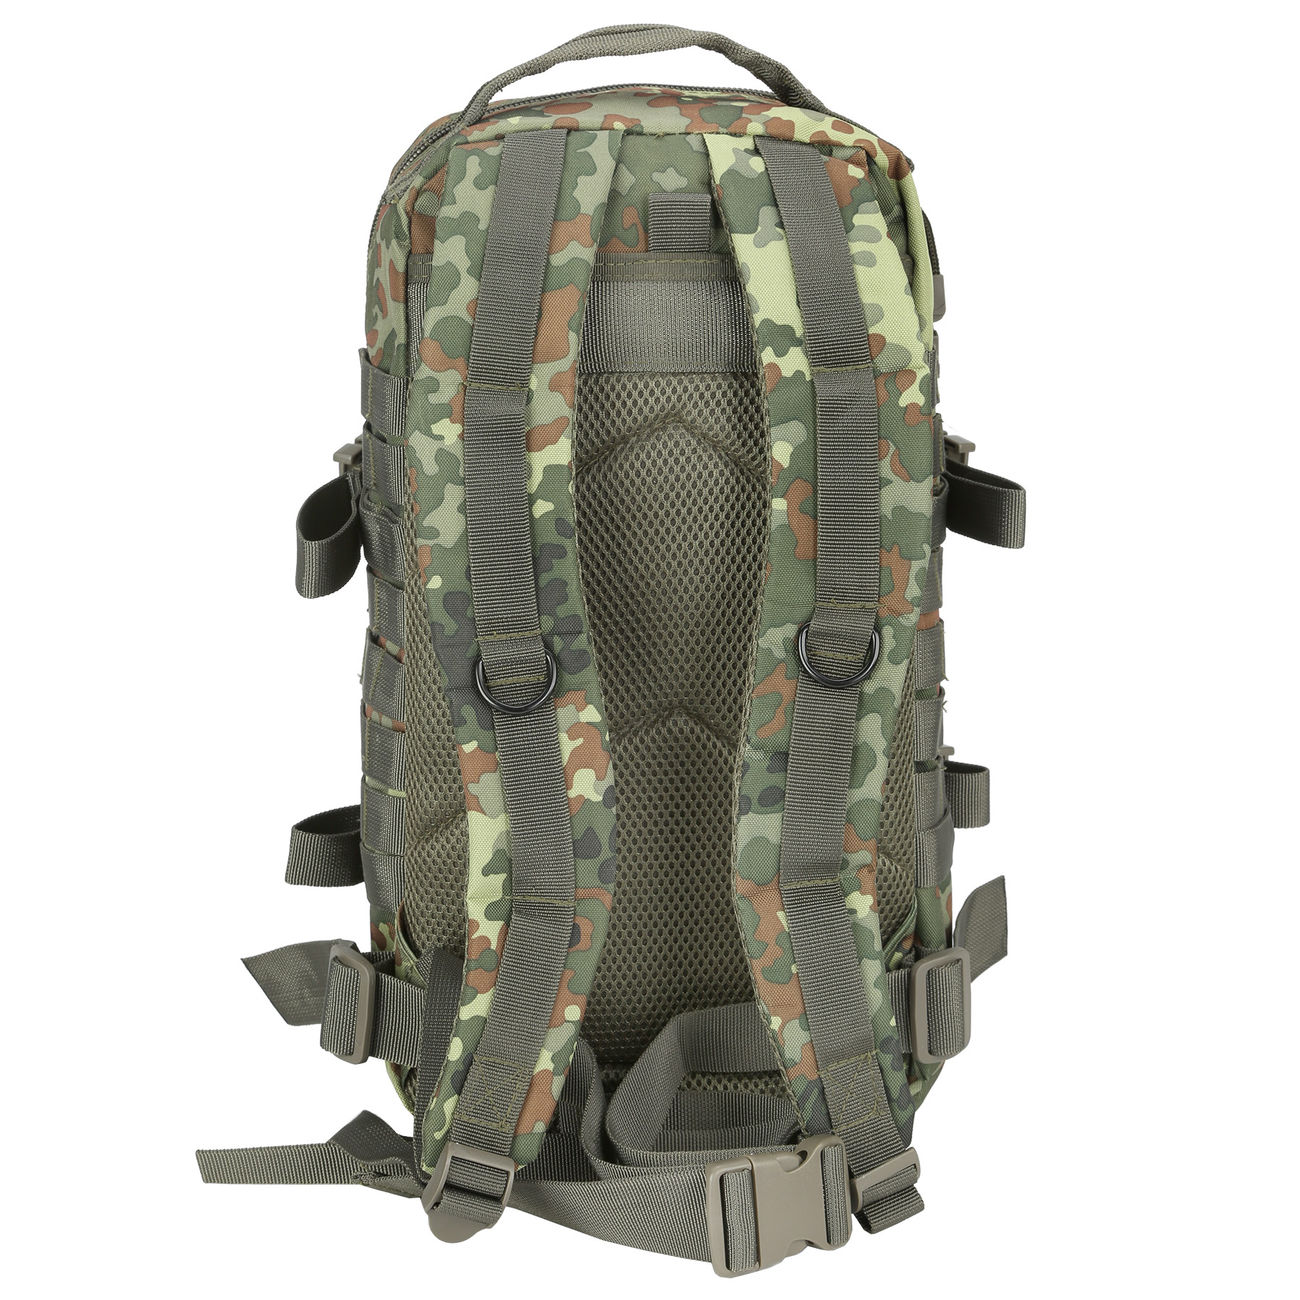 MFH Rucksack US Assault flecktarn 7